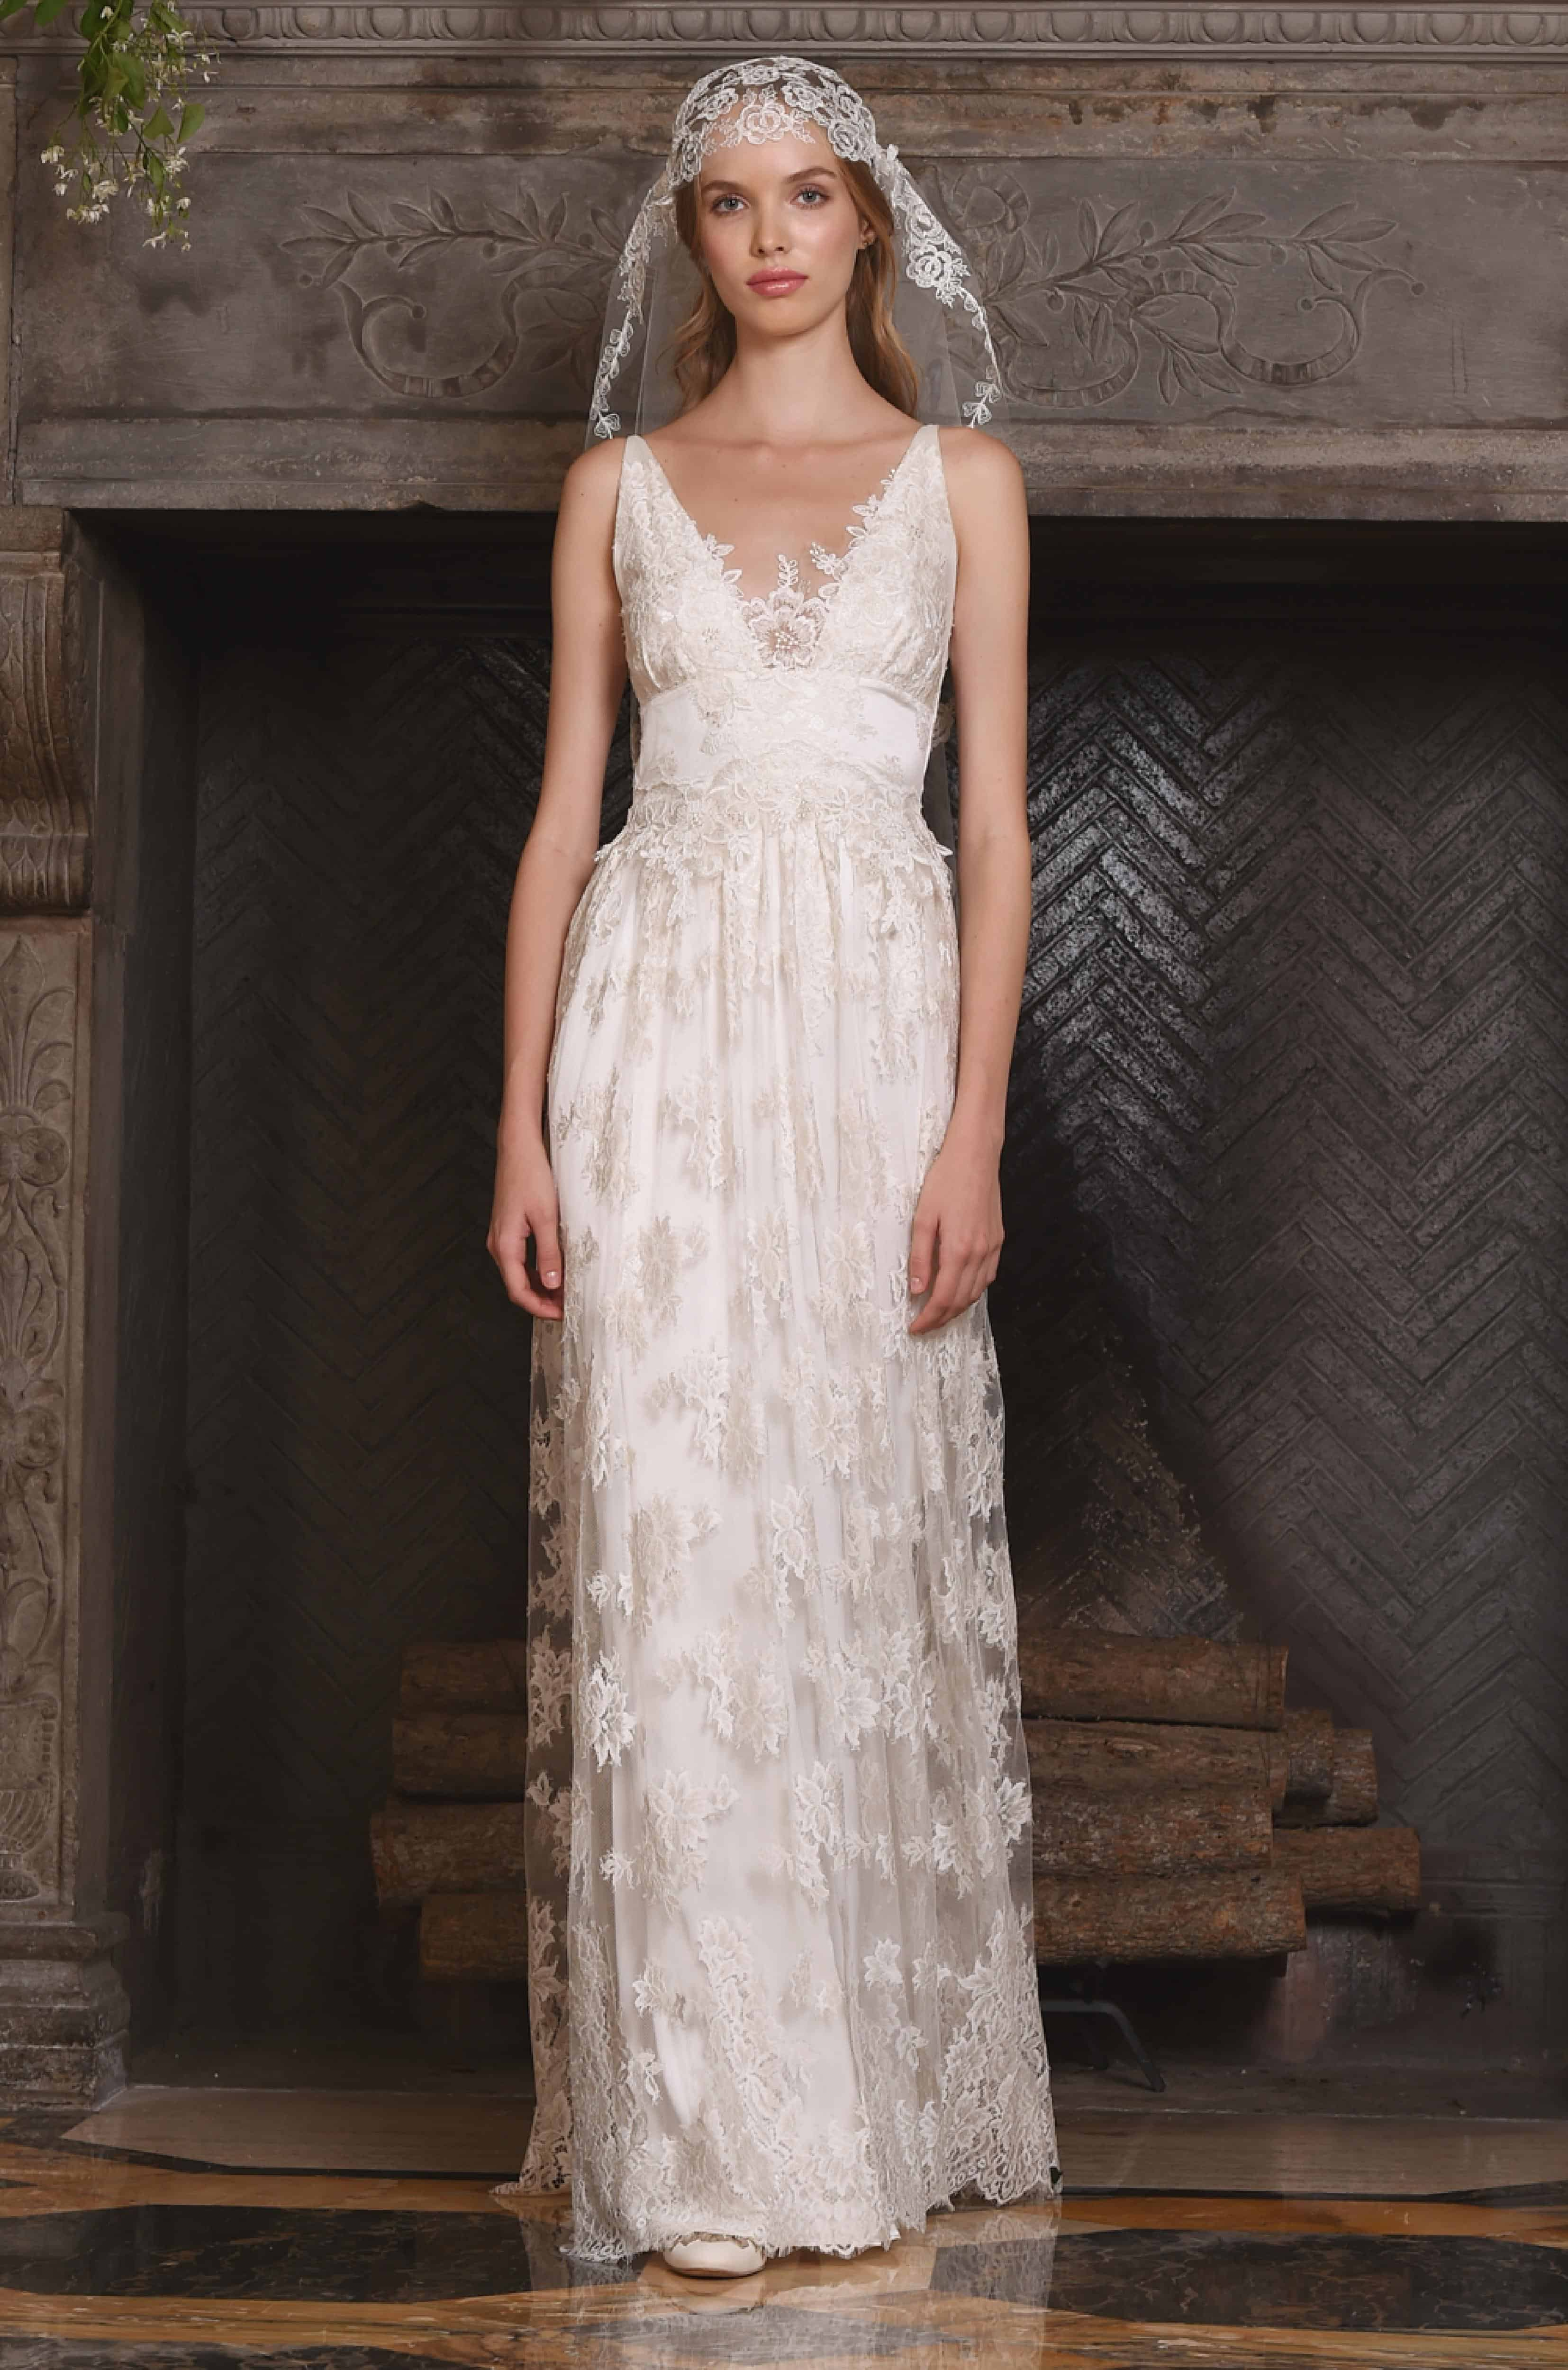 Claire-Pettibone-Four-Seasons-Persephone-front.jpg